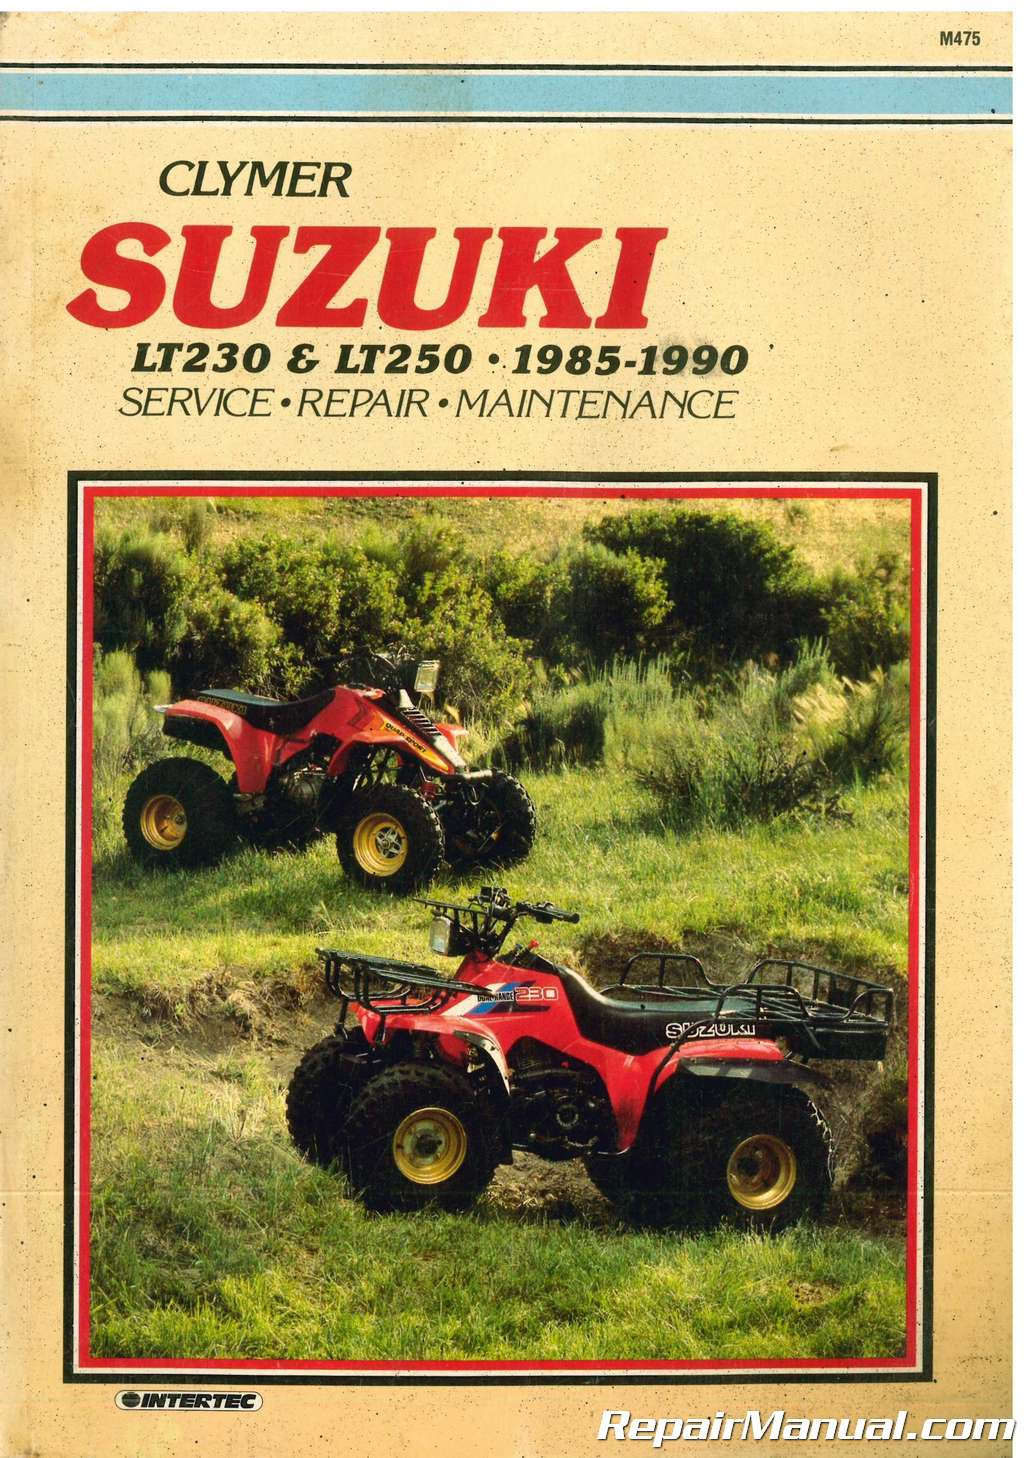 used 1985 1990 suzuki lt230 lt250 atv repair manual by clymer rh repairmanual com